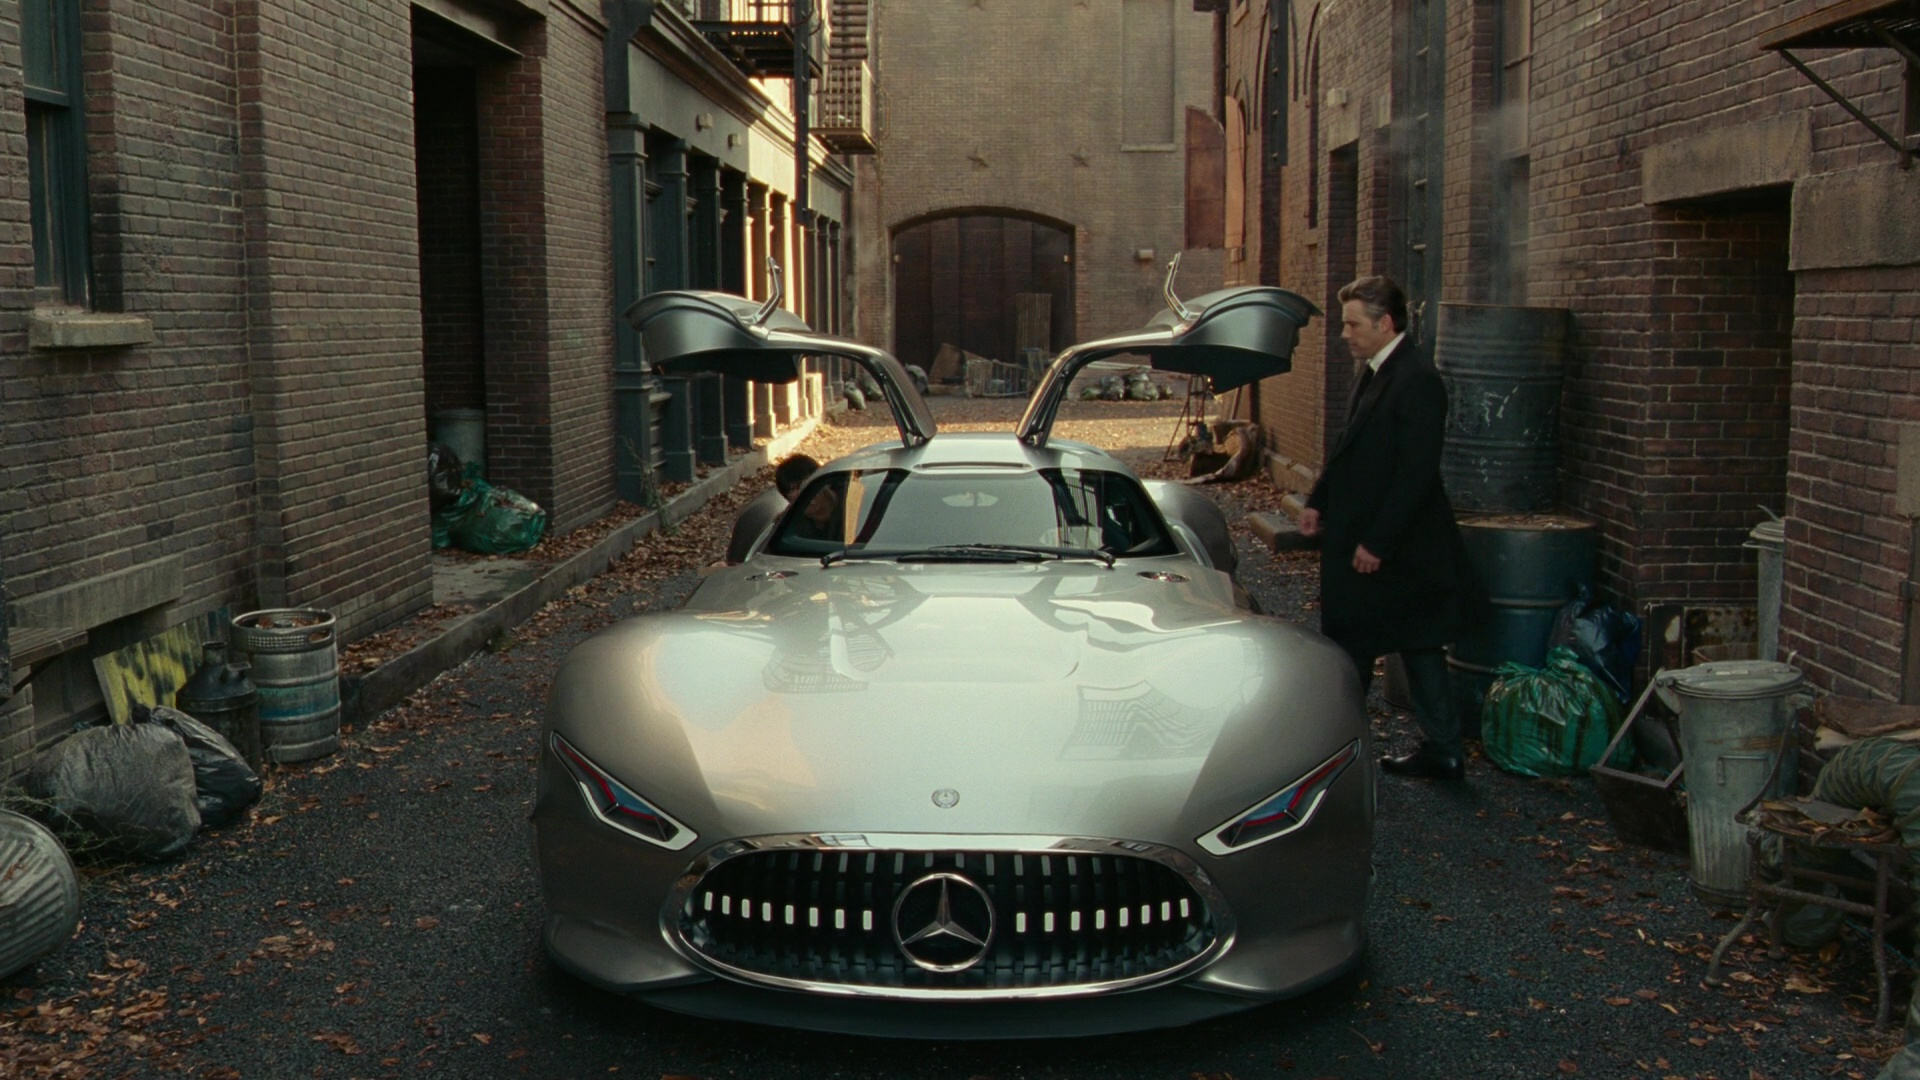 Mercedes Benz Amg Vision Car Used By Ben Affleck In